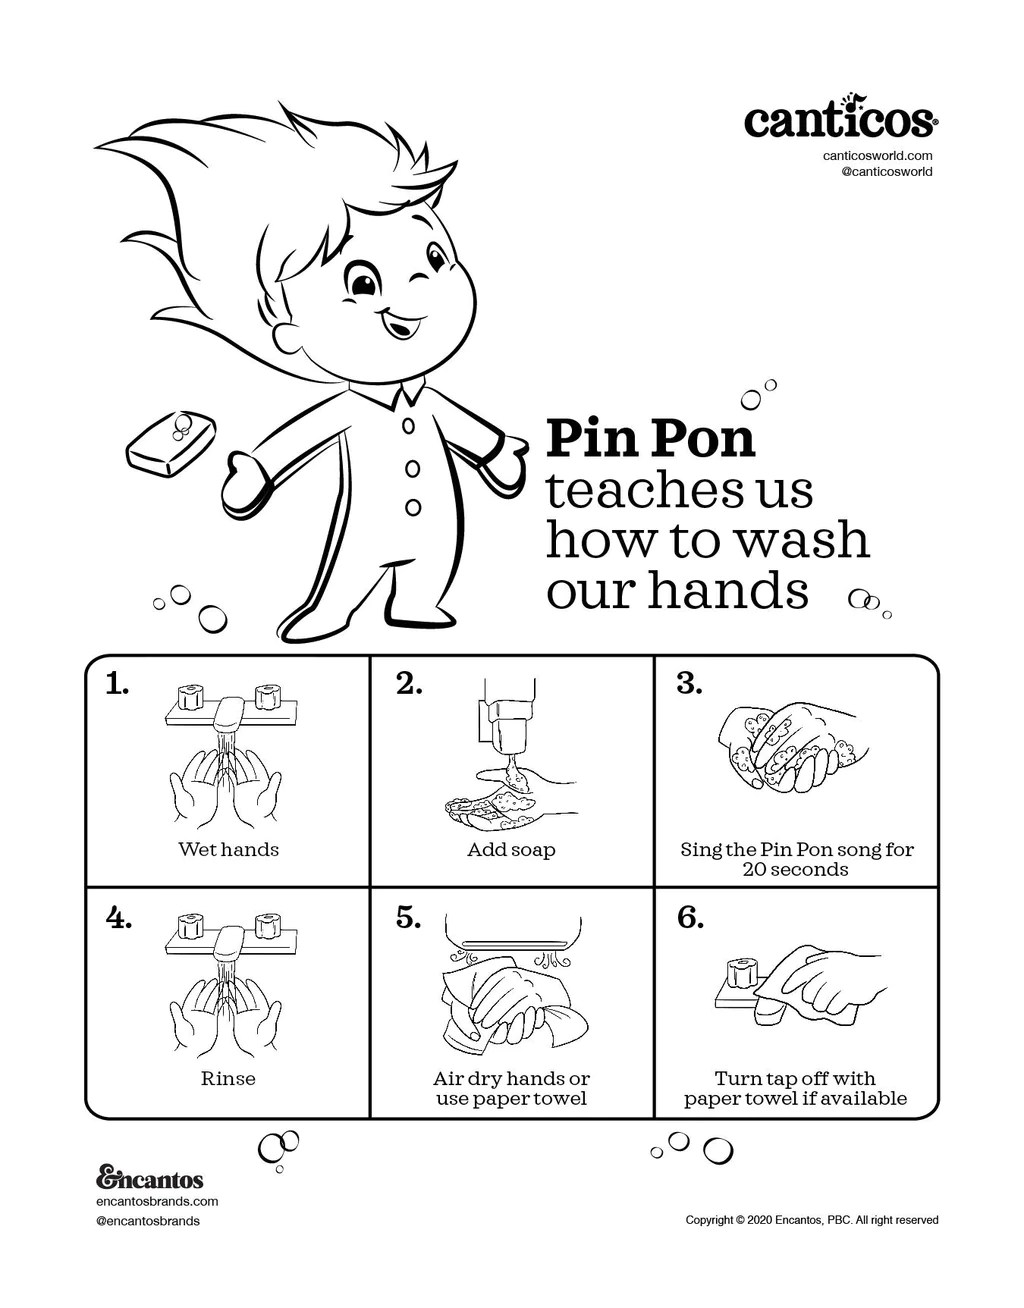 Pin Pon Canticos : canticos, Printable, Hands, Activity, Sheet